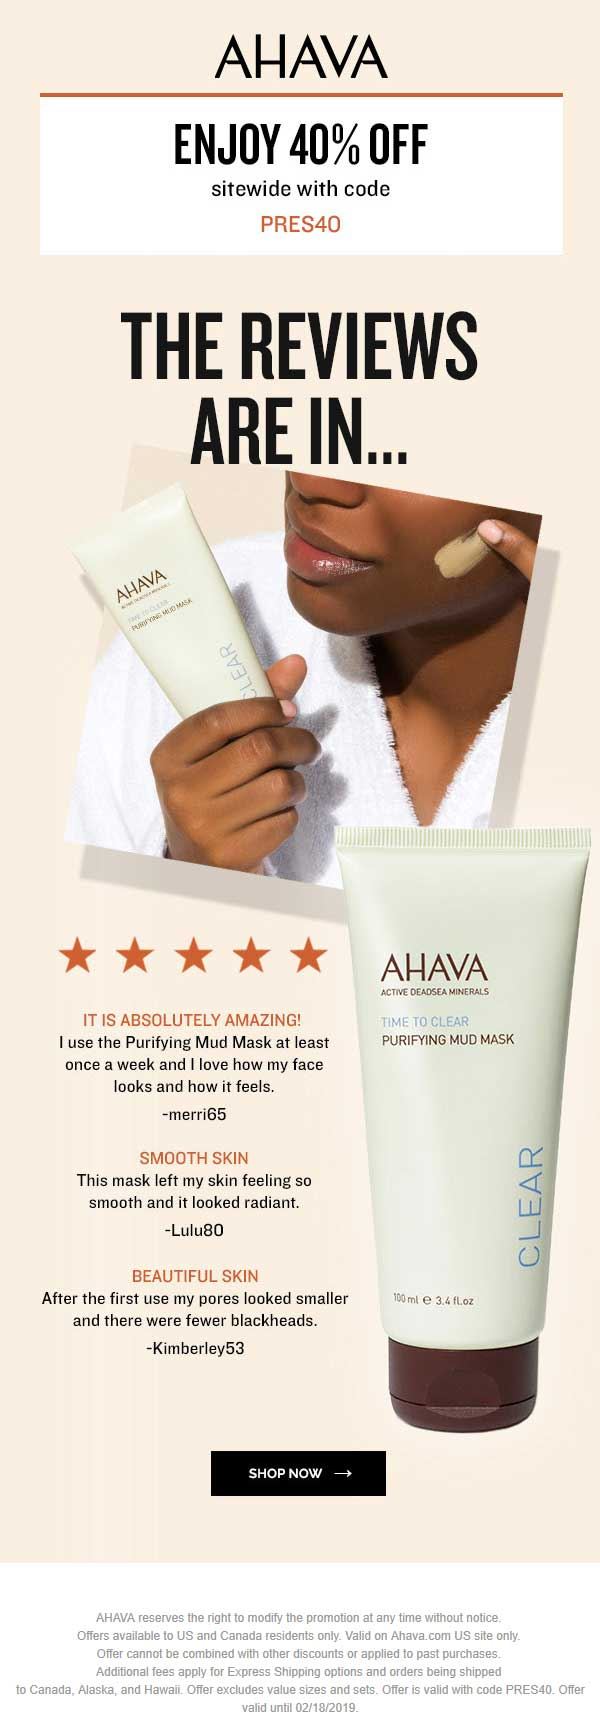 AHAVA Coupon August 2019 40% off everything online at AHAVA via promo code PRES40